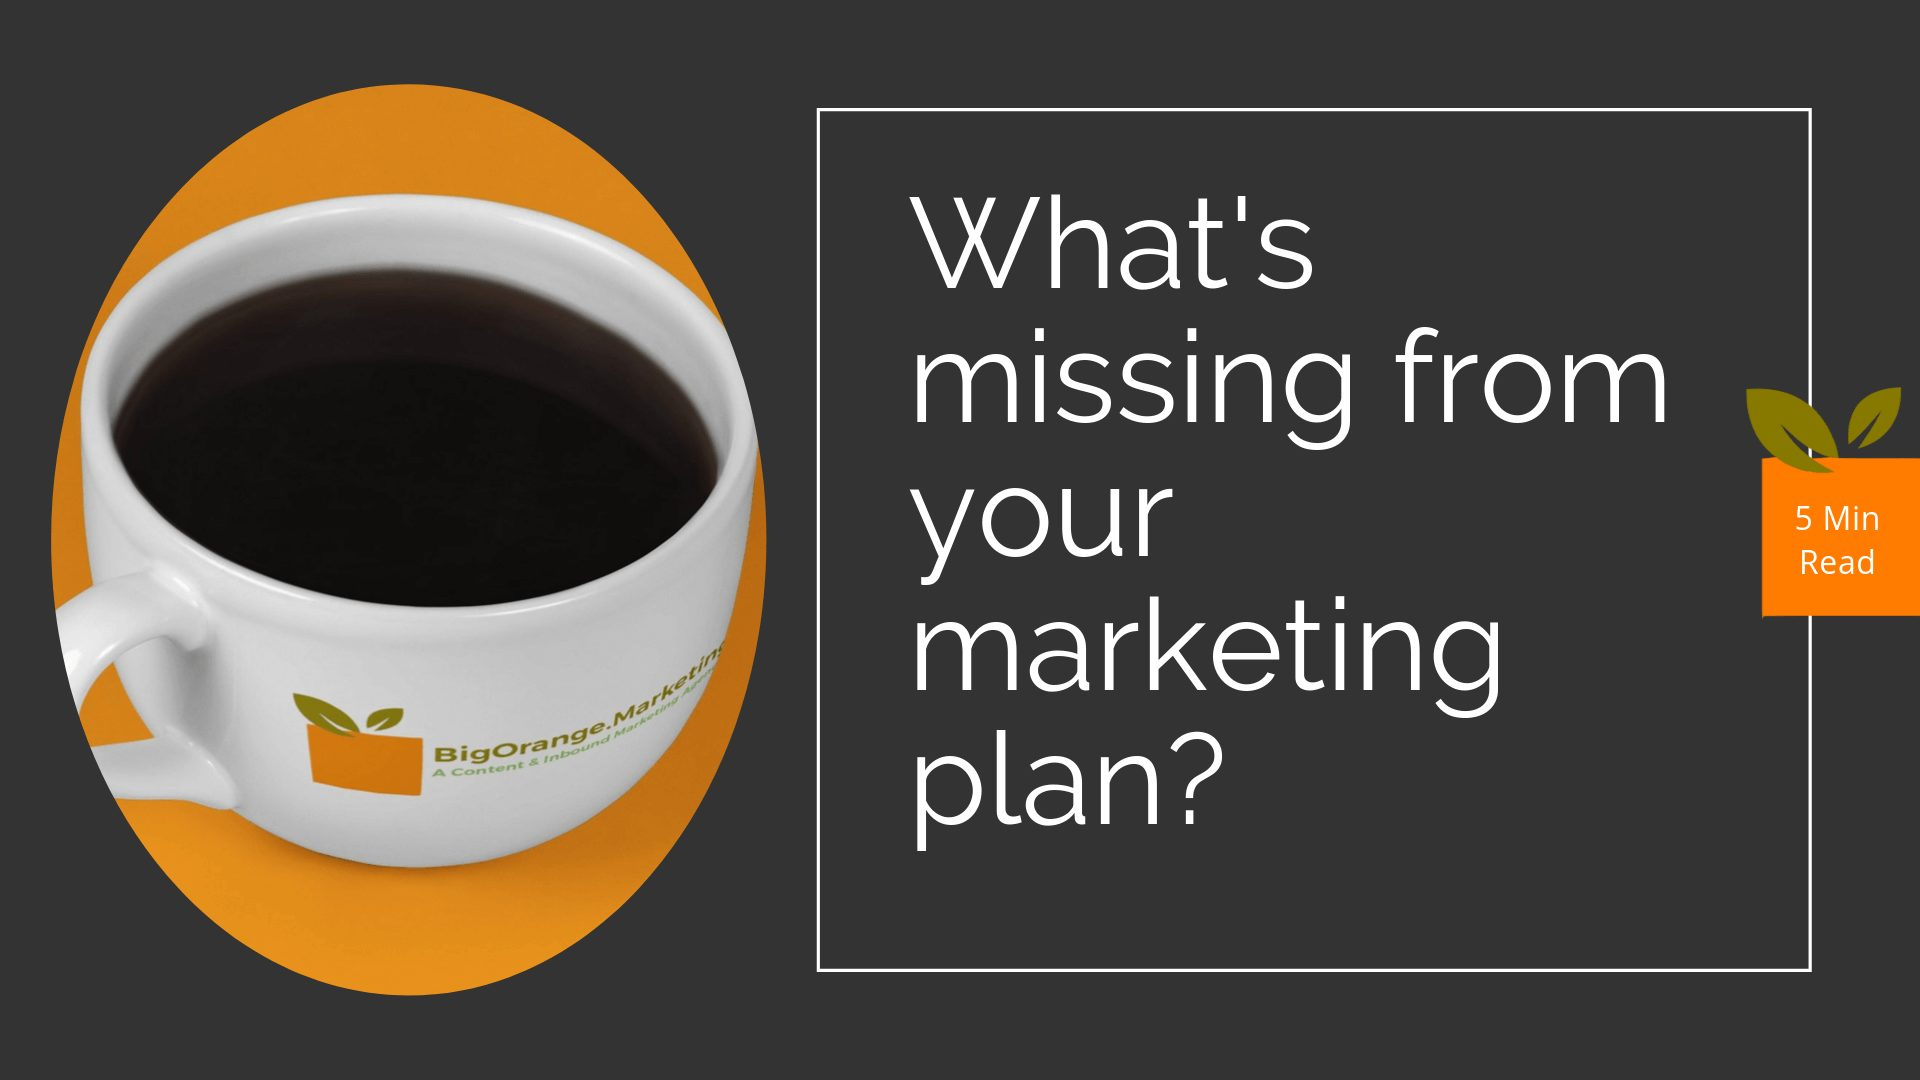 5 Things Missing From Your Marketing Plan or Website